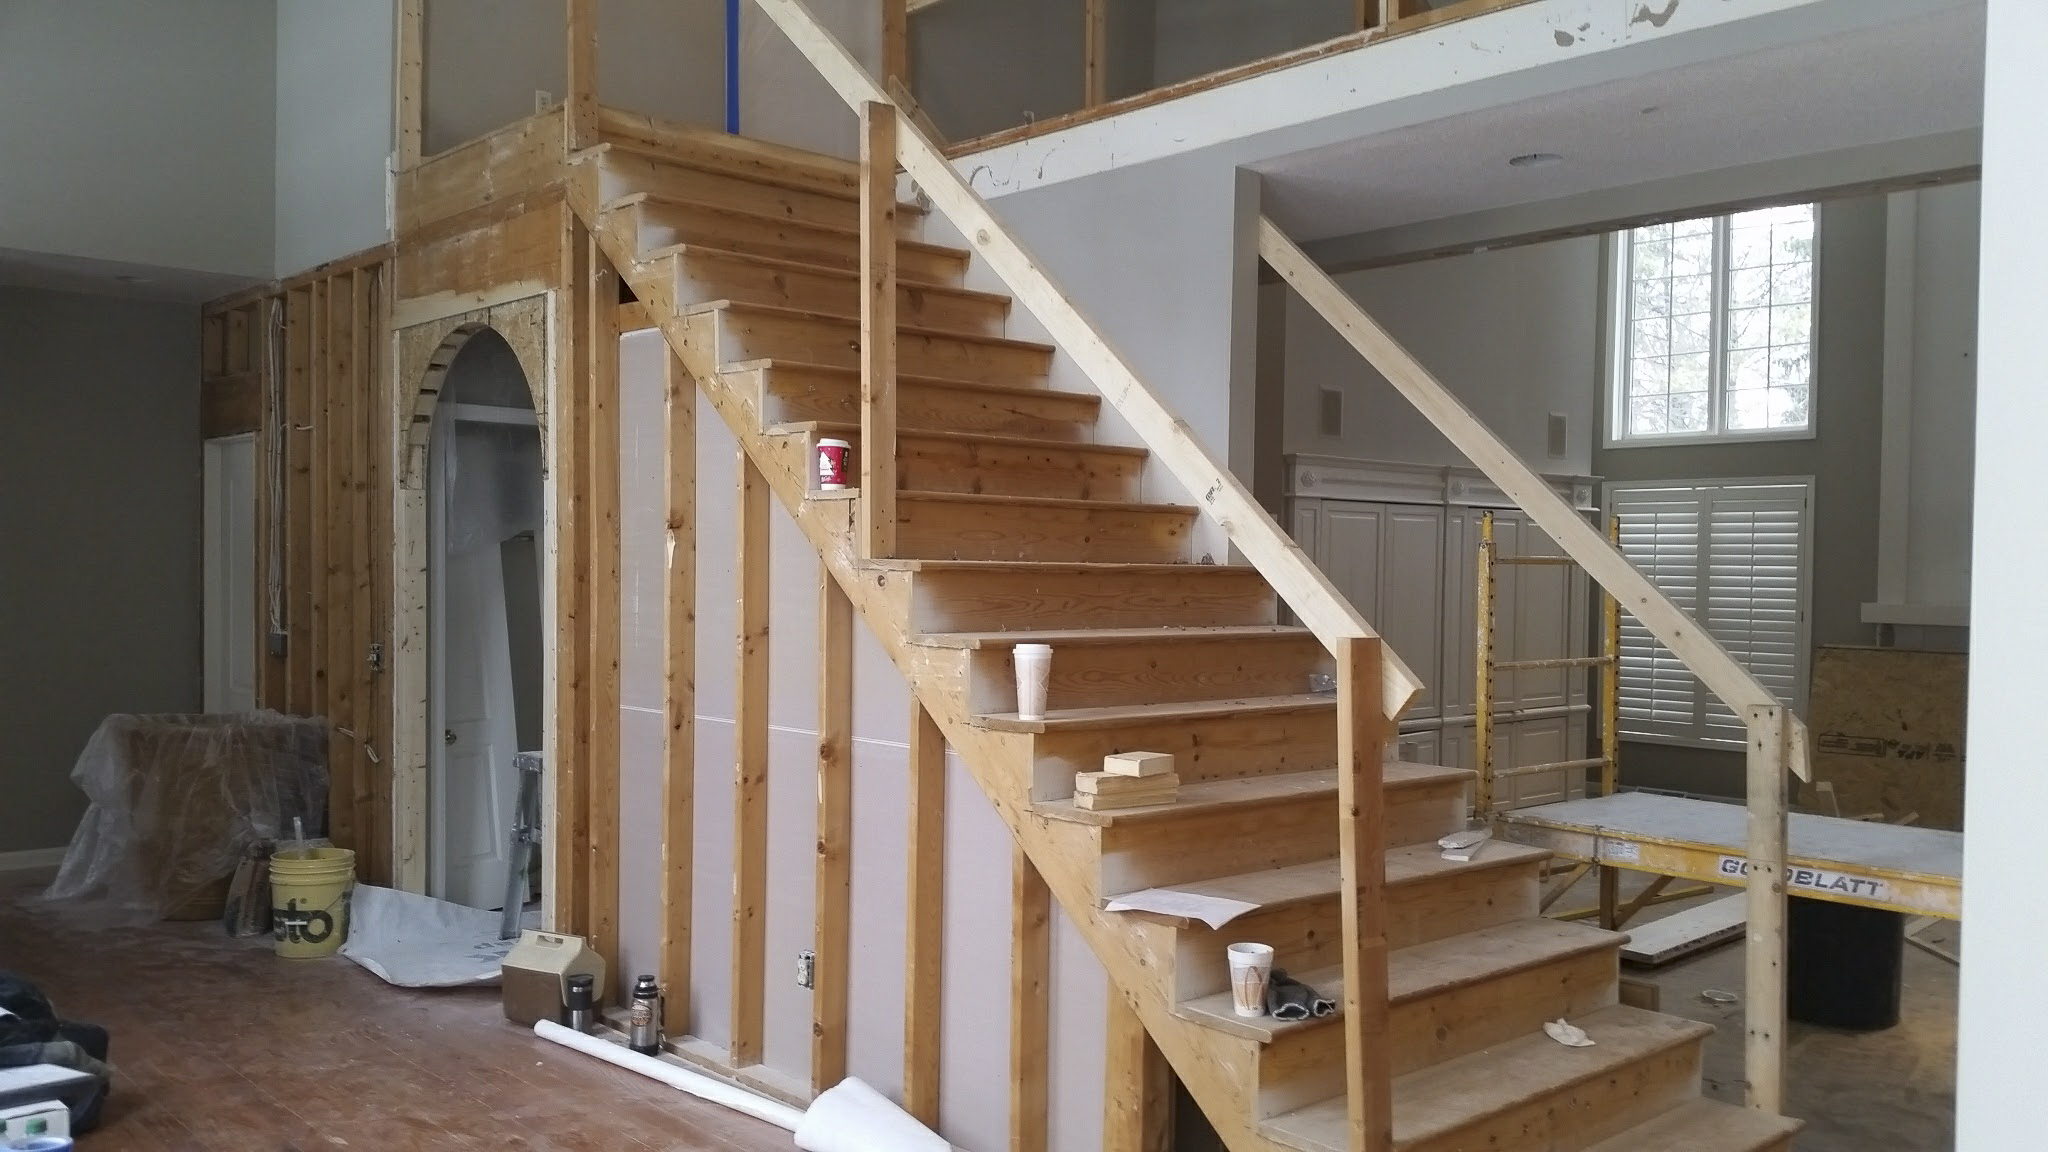 Carpeting, railings and drywall removed from stairway and foyer walls. Arched opening framed in.